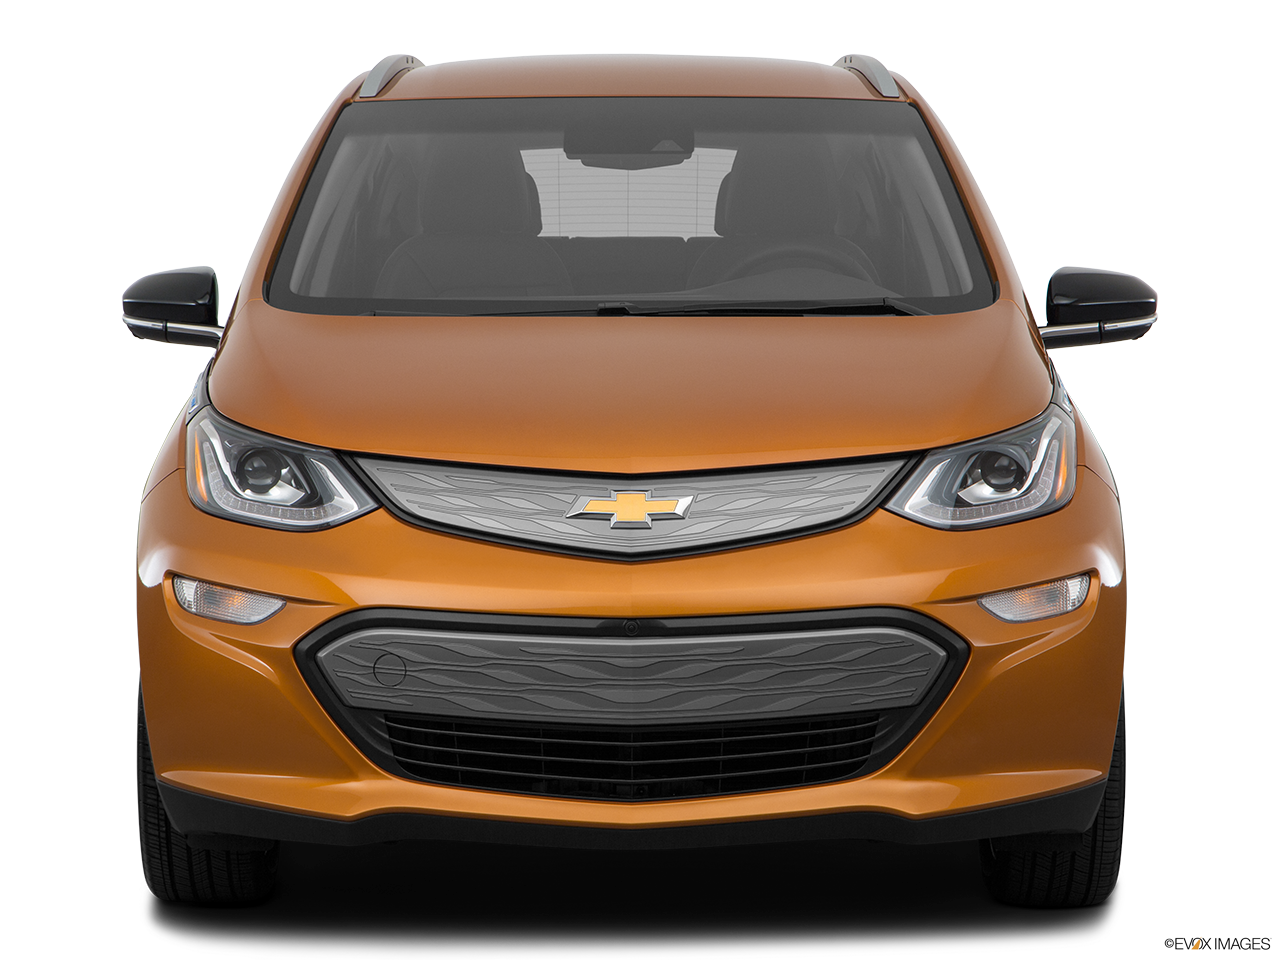 Front view of the Chevrolet Bolt